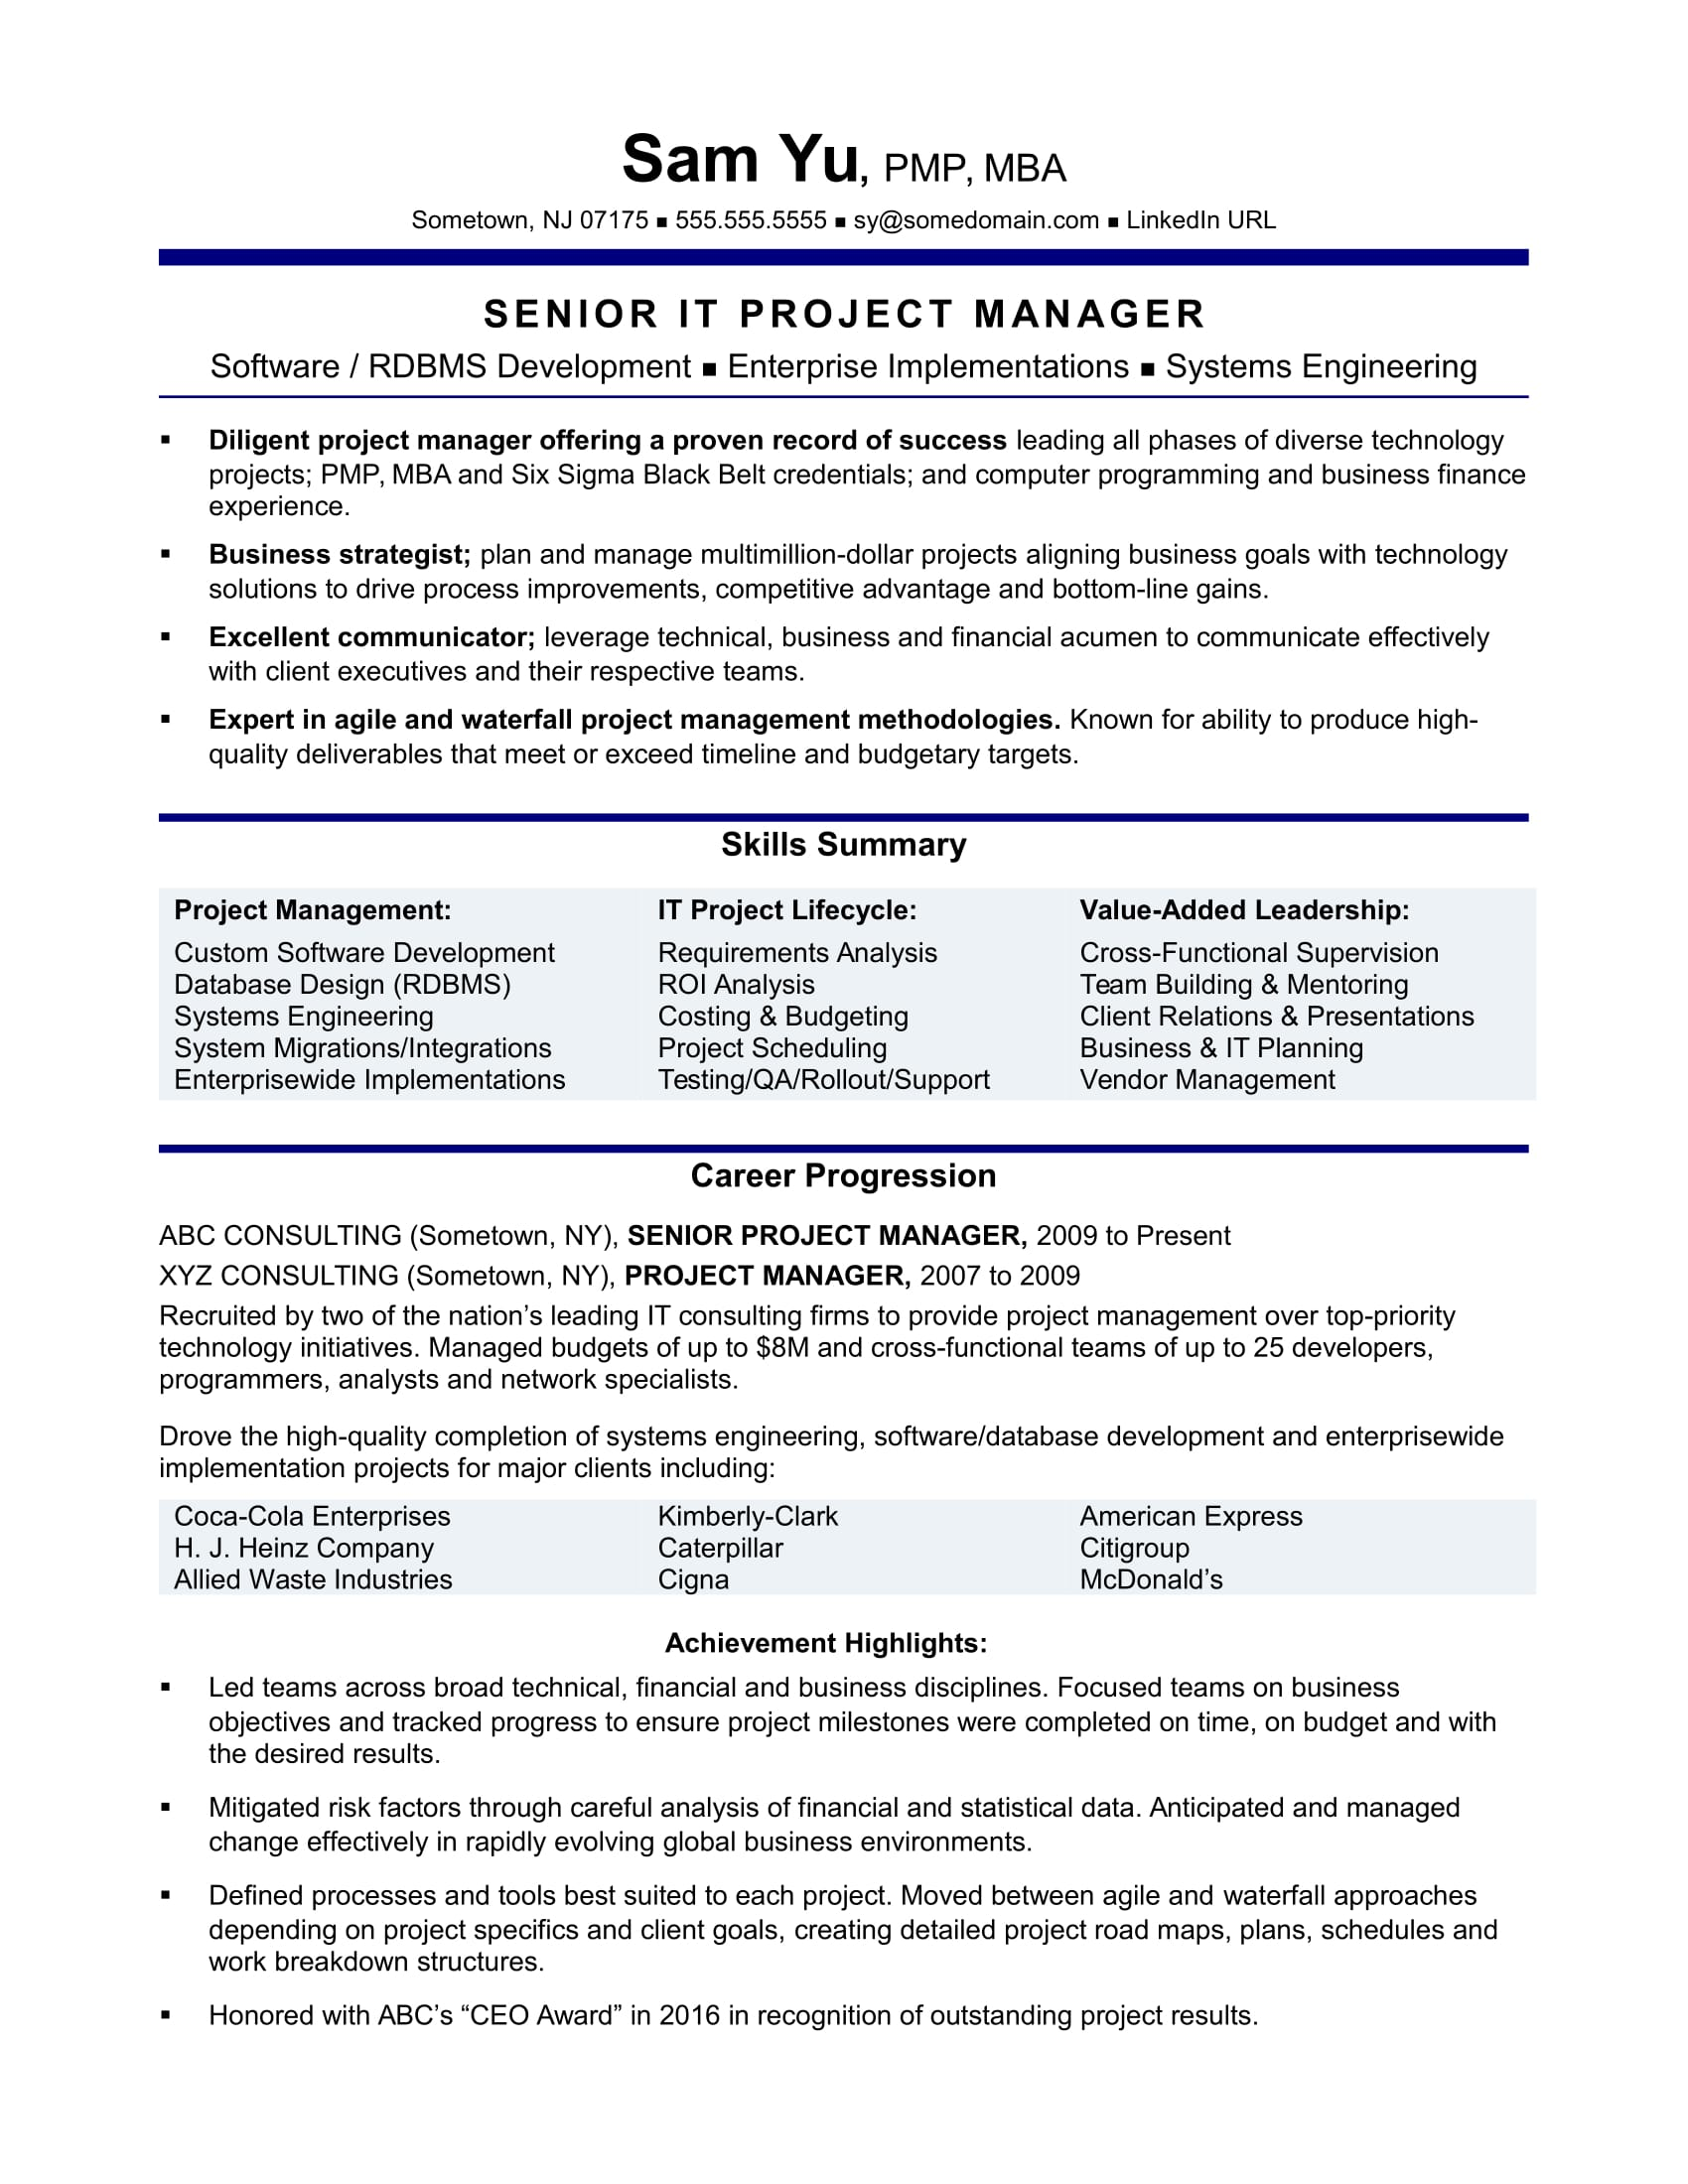 Attractive Experienced IT Project Manager Resume Sample Regard To It Project Manager Resume Sample